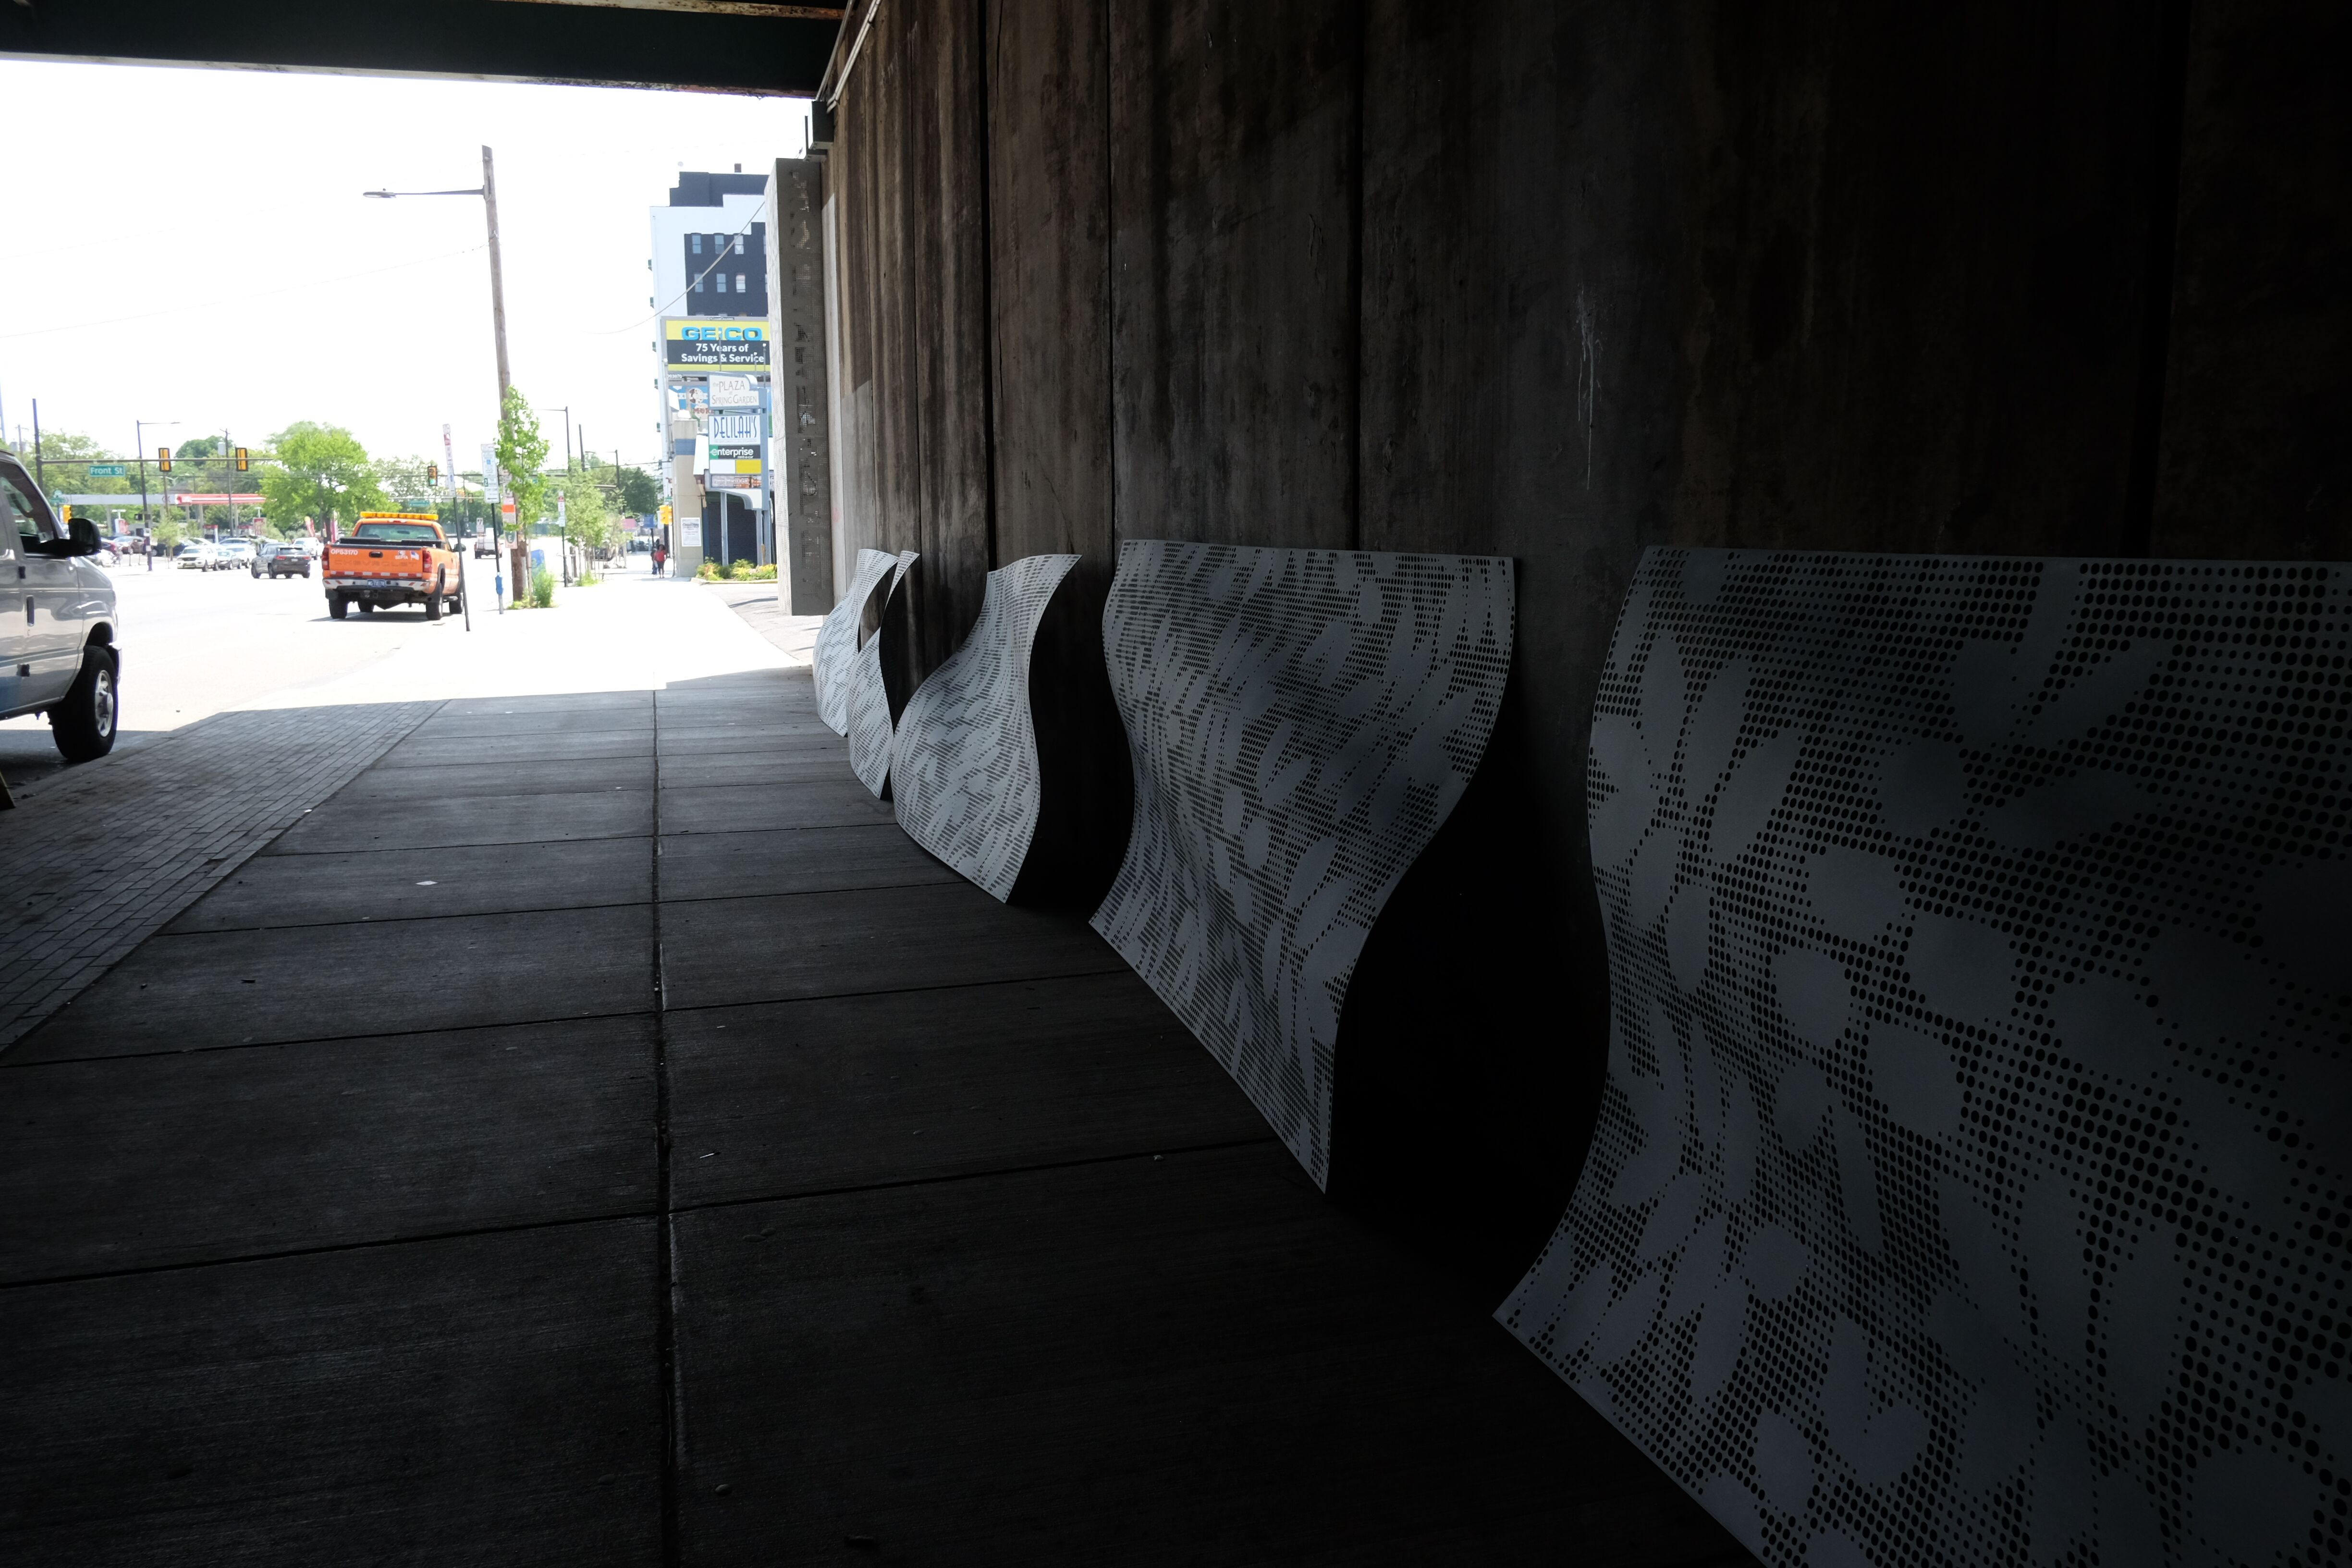 Spring Garden Connector: Panels suspended from the underpass roof wave.